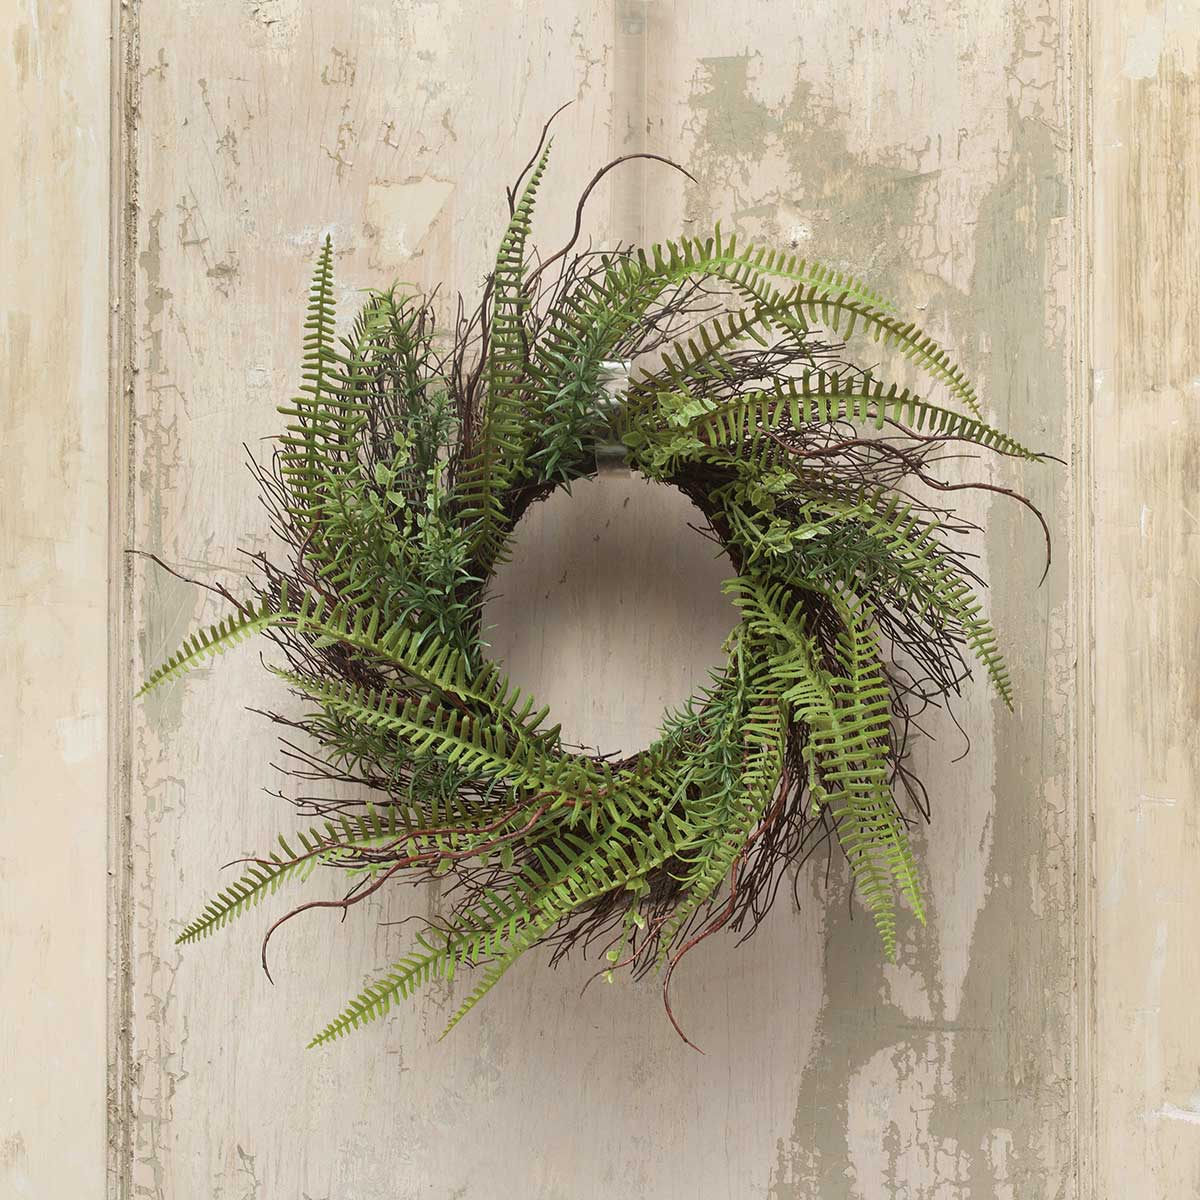 "DECORATIVE FERN & TWIG WREATH 21""(INNER RING 7"")"